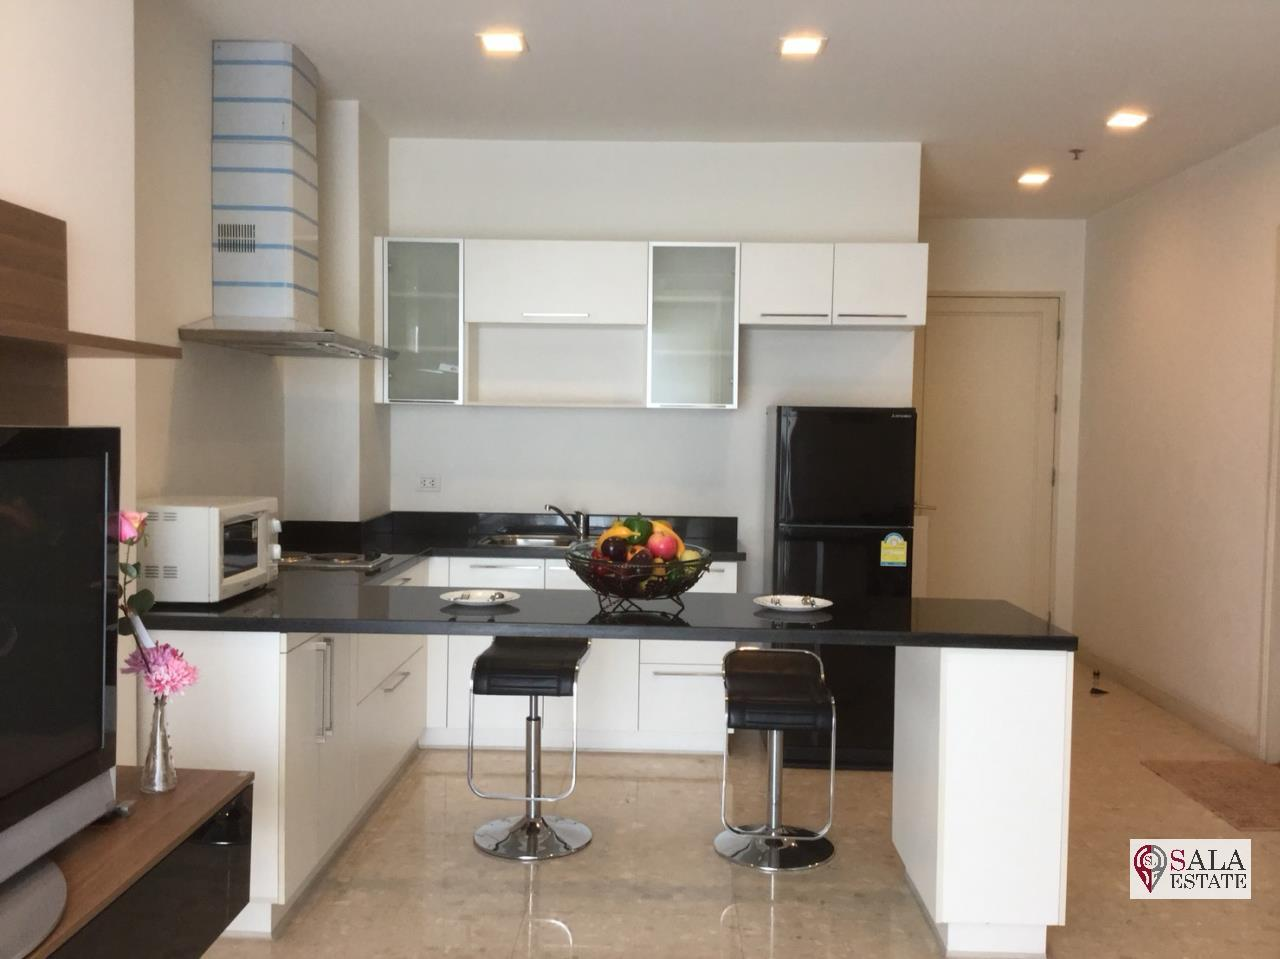 SALA ESTATE Agency's NUSASIRI – BTS EKKAMAI, 2 Bedroom 1 Bathroom, Fully furnished, City View 6